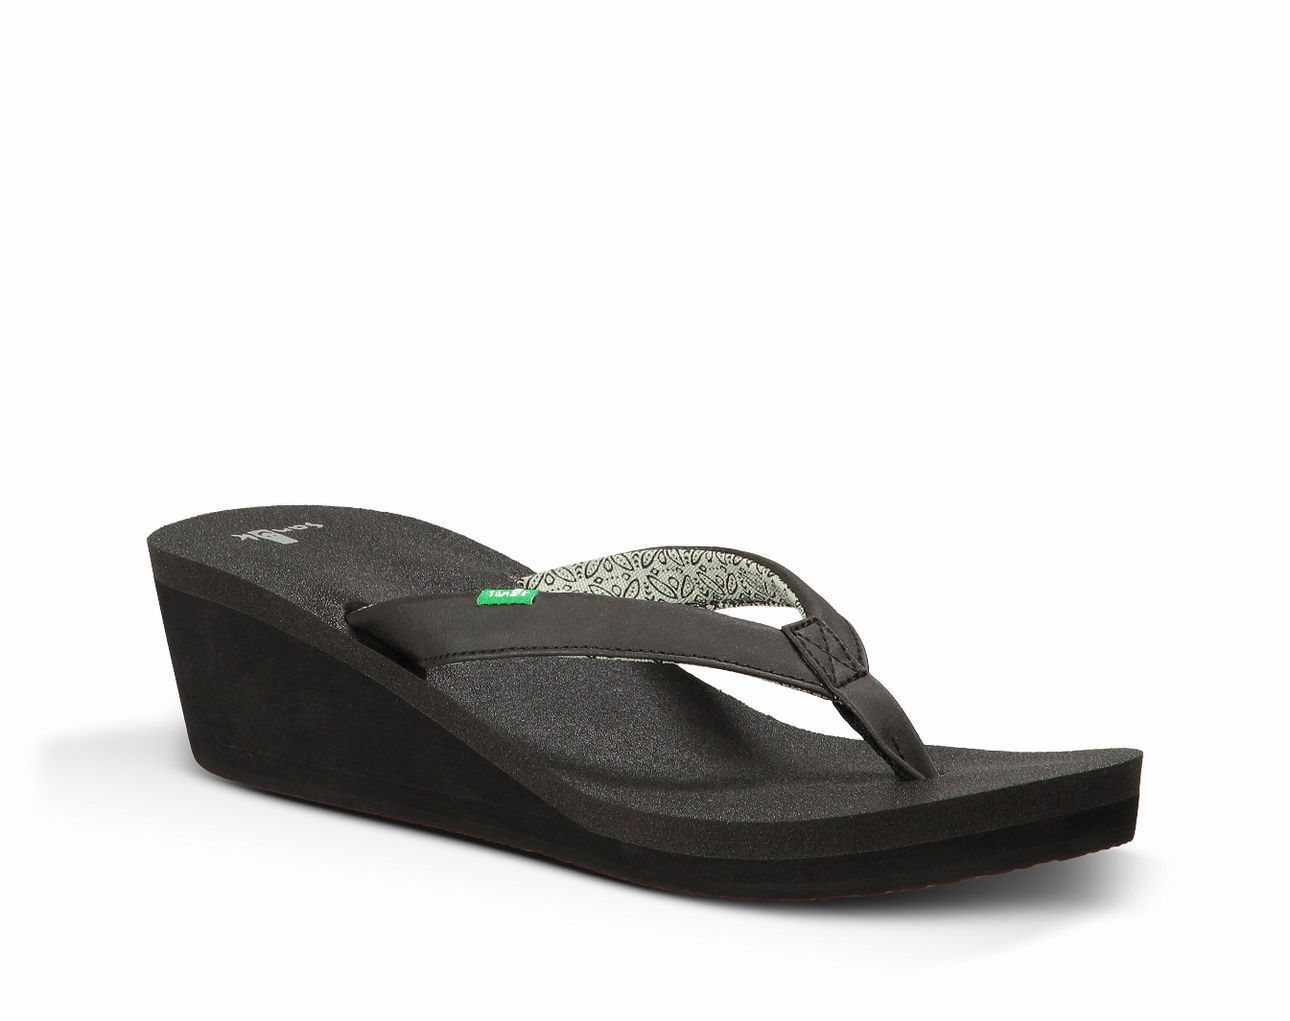 WOMENS SANUK YOGA ZEN WEDGE WEDGES. BLACK